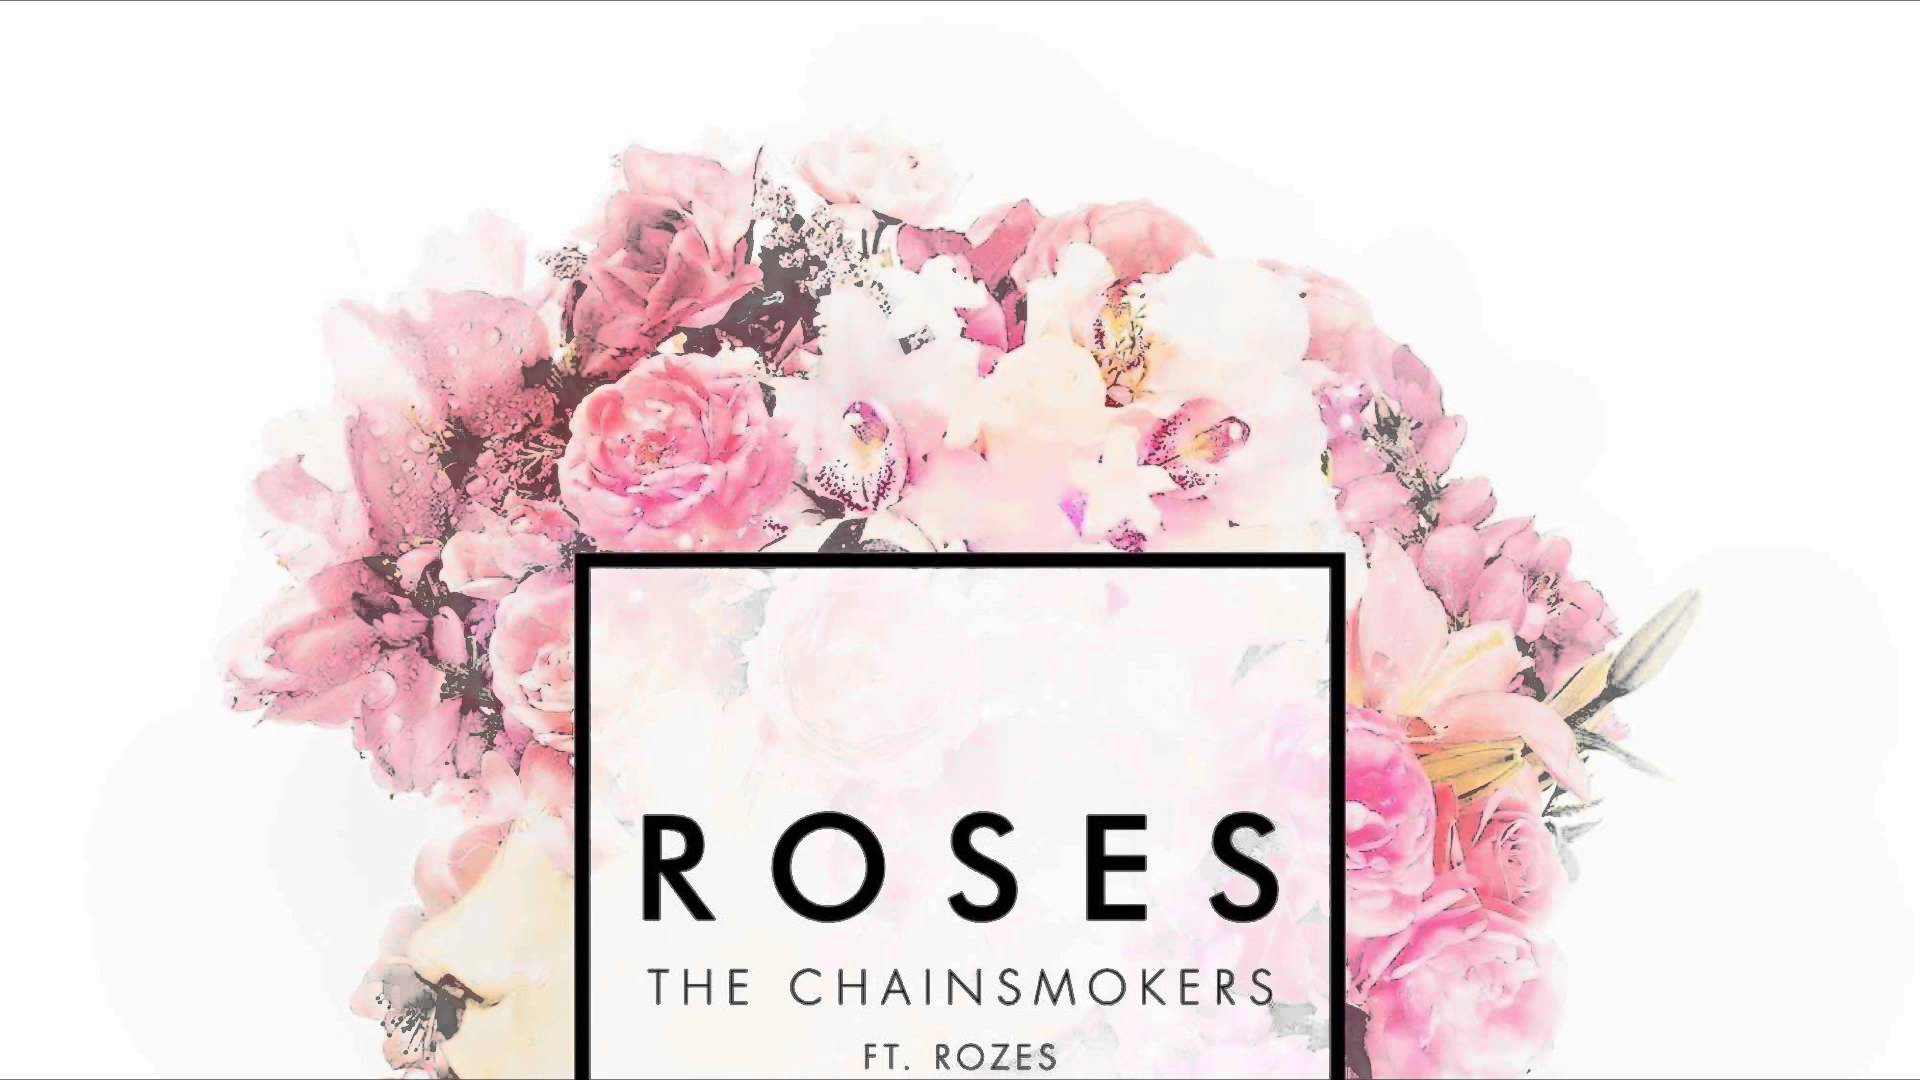 The Chainsmokers Ft. Rozes - Roses (Studio Acapella) - YouTube